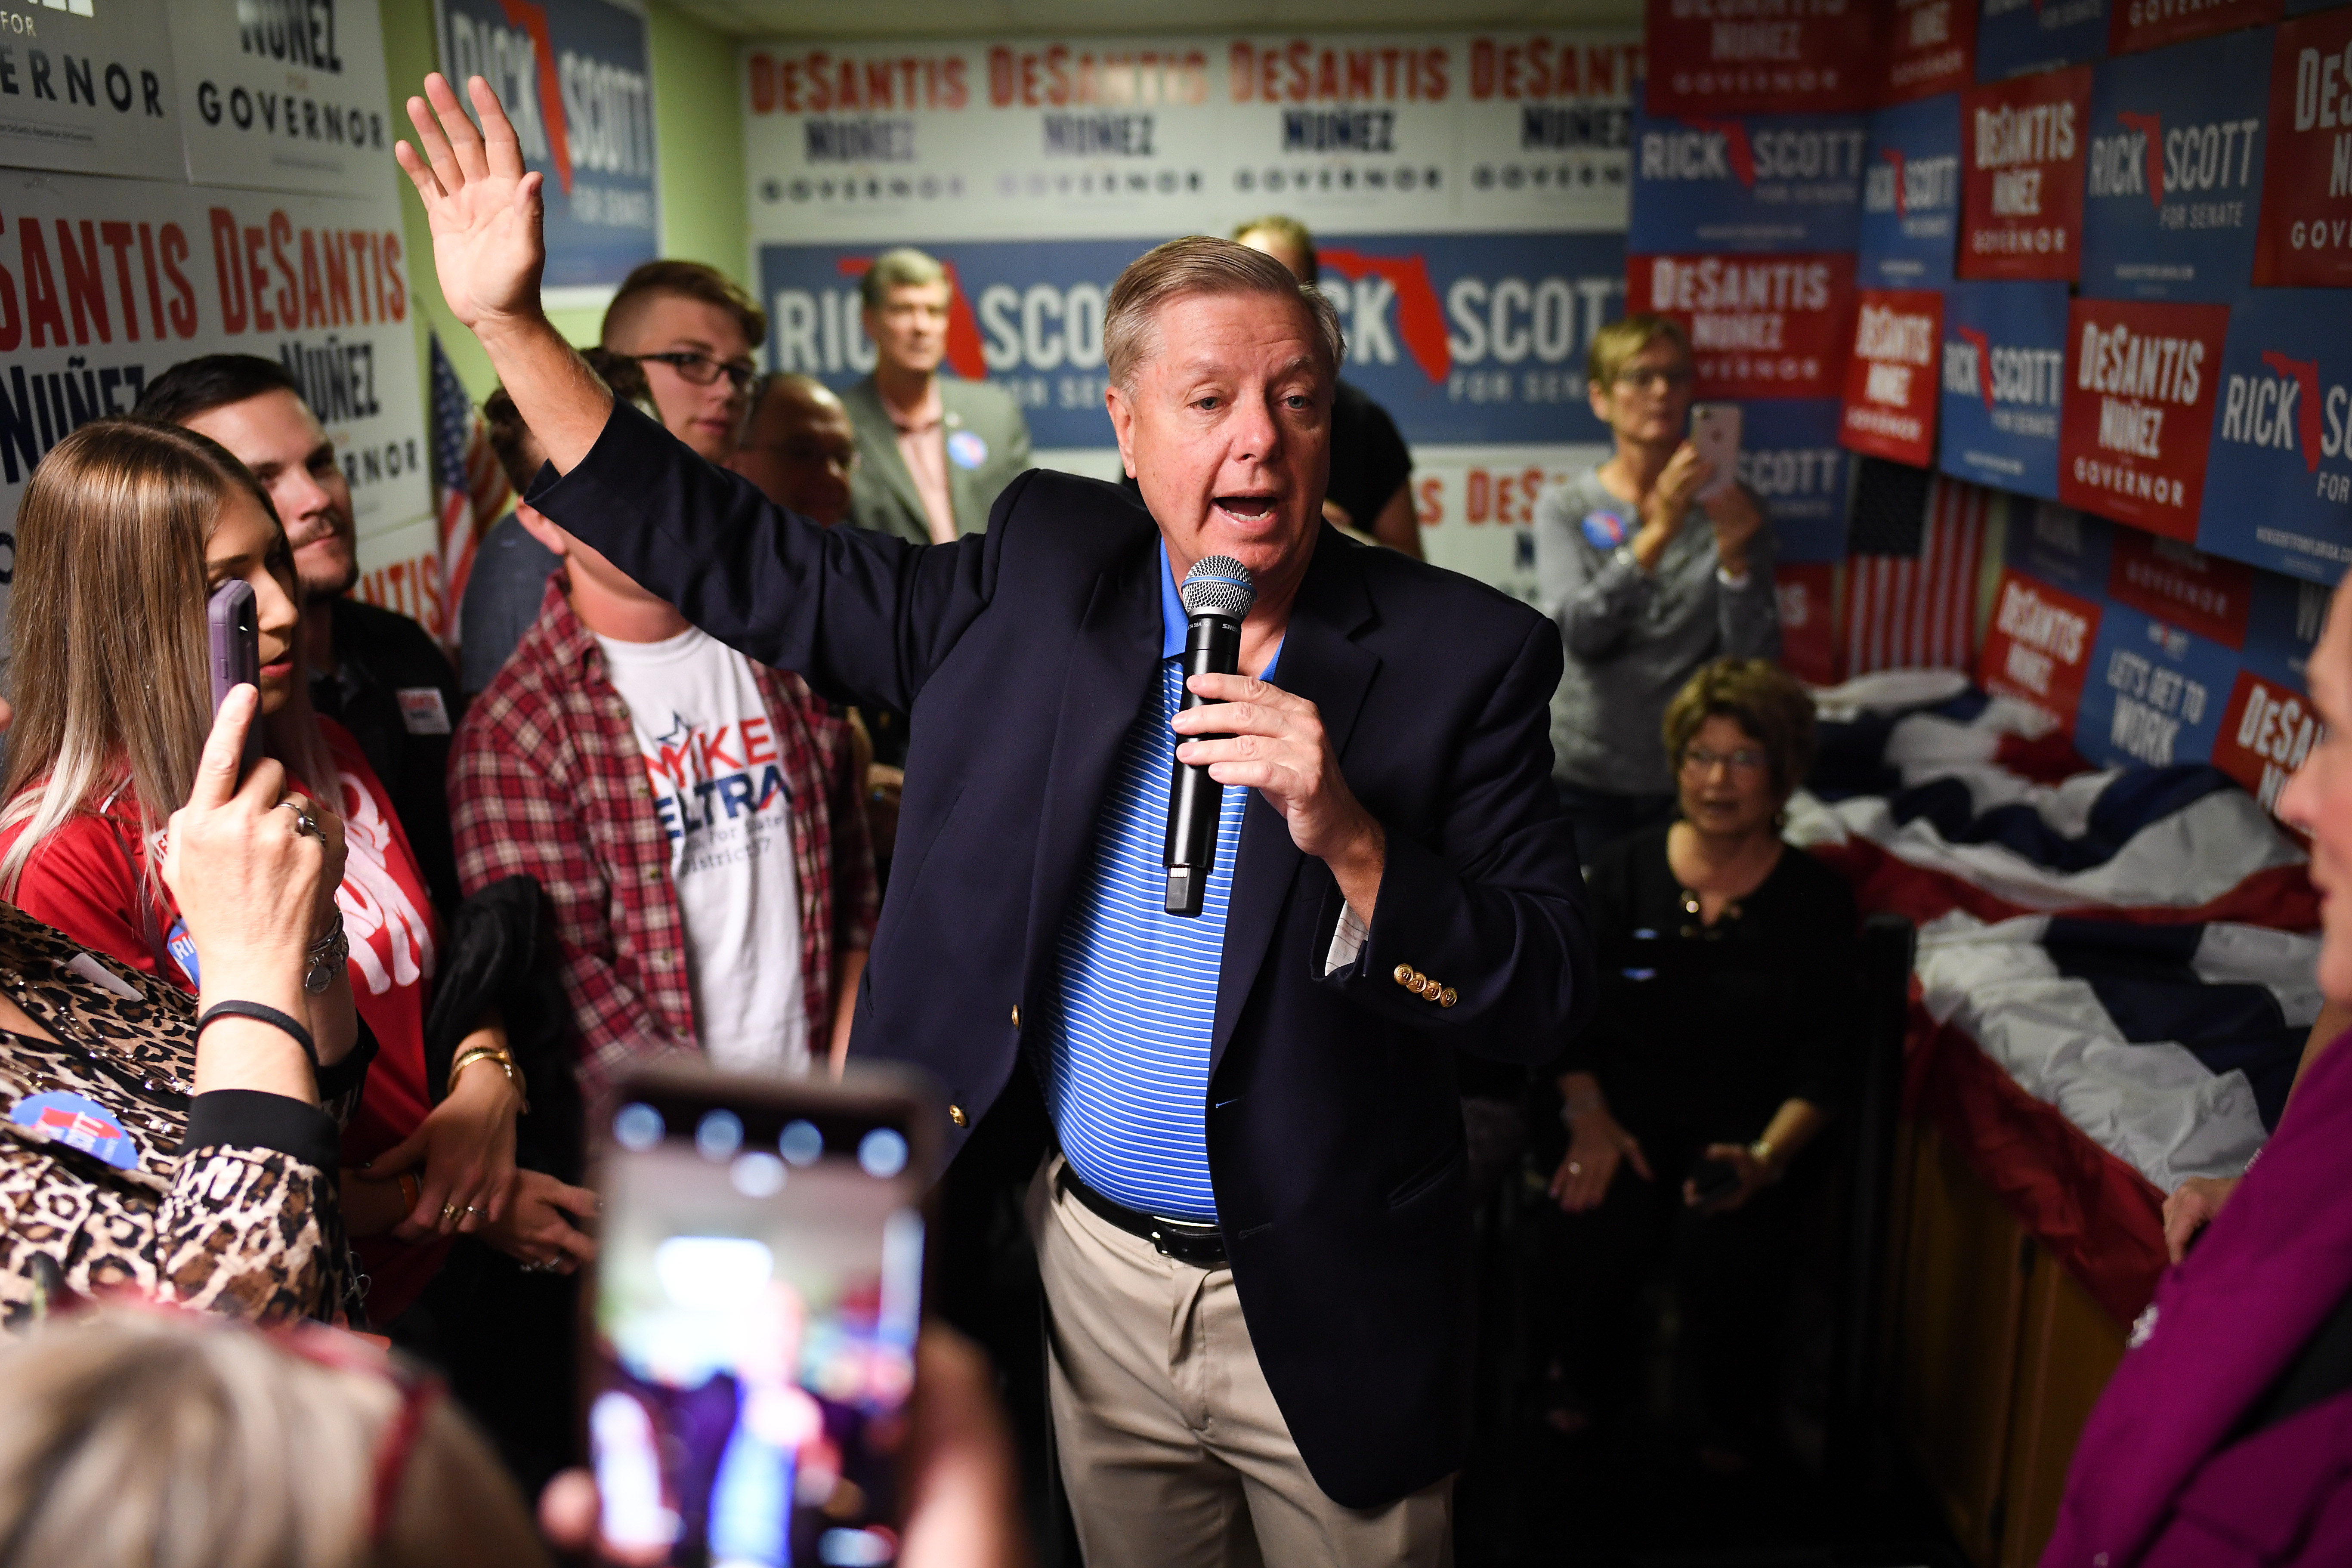 U.S. Senator Lindsey Graham attends an event with Republican gubernatorial candidate Ron DeSantis, at Hillsborough Victory Office on November 2, 2018 in Tampa, Florida. DeSantis is running against Democratic challenger Andrew Gillum to be the next Florida governor. (Jeff J Mitchell/Getty Images)